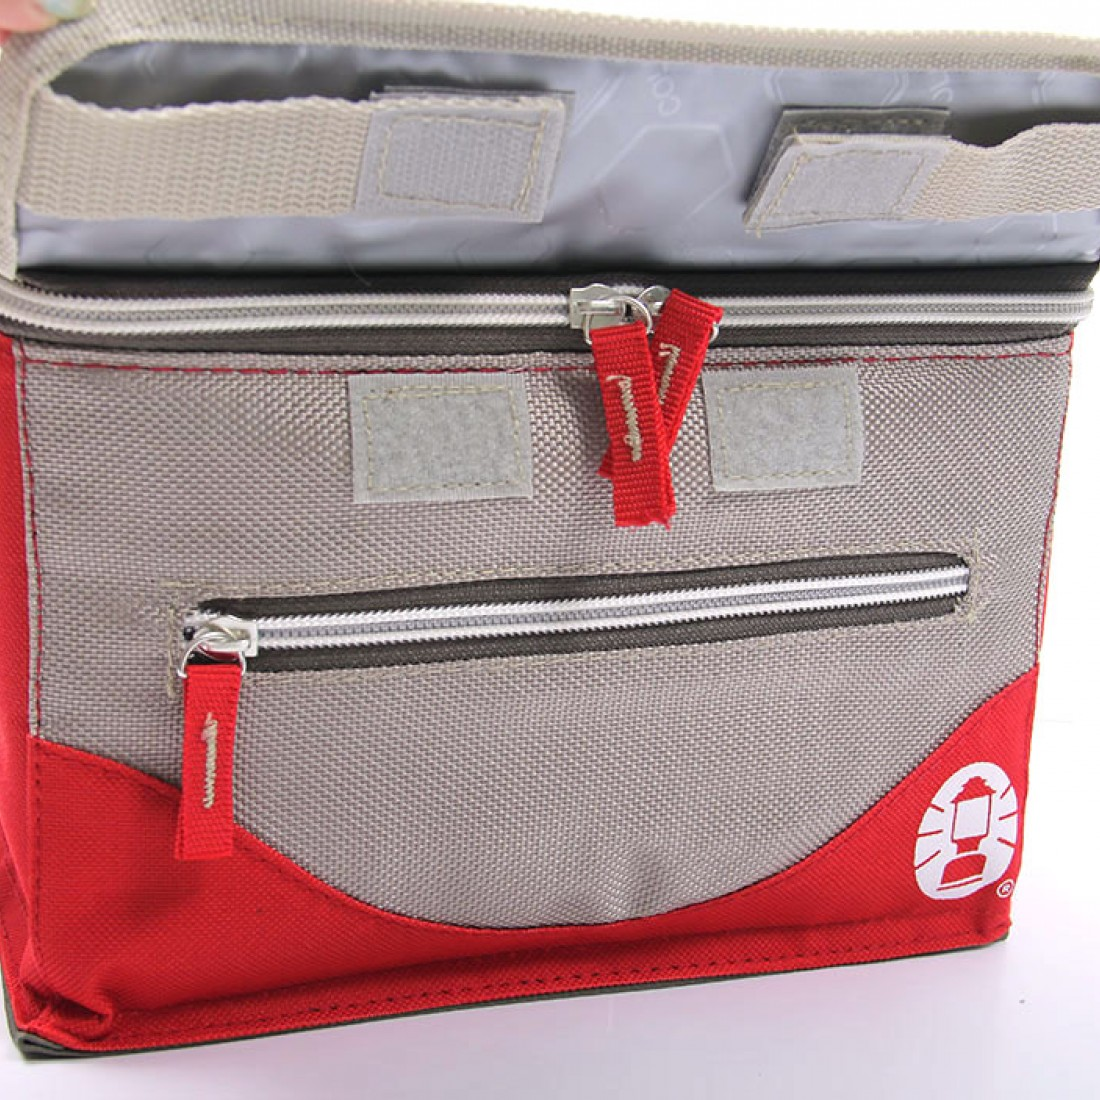 Coleman 4L Collapsible Soft Cooler (Beige/Red)